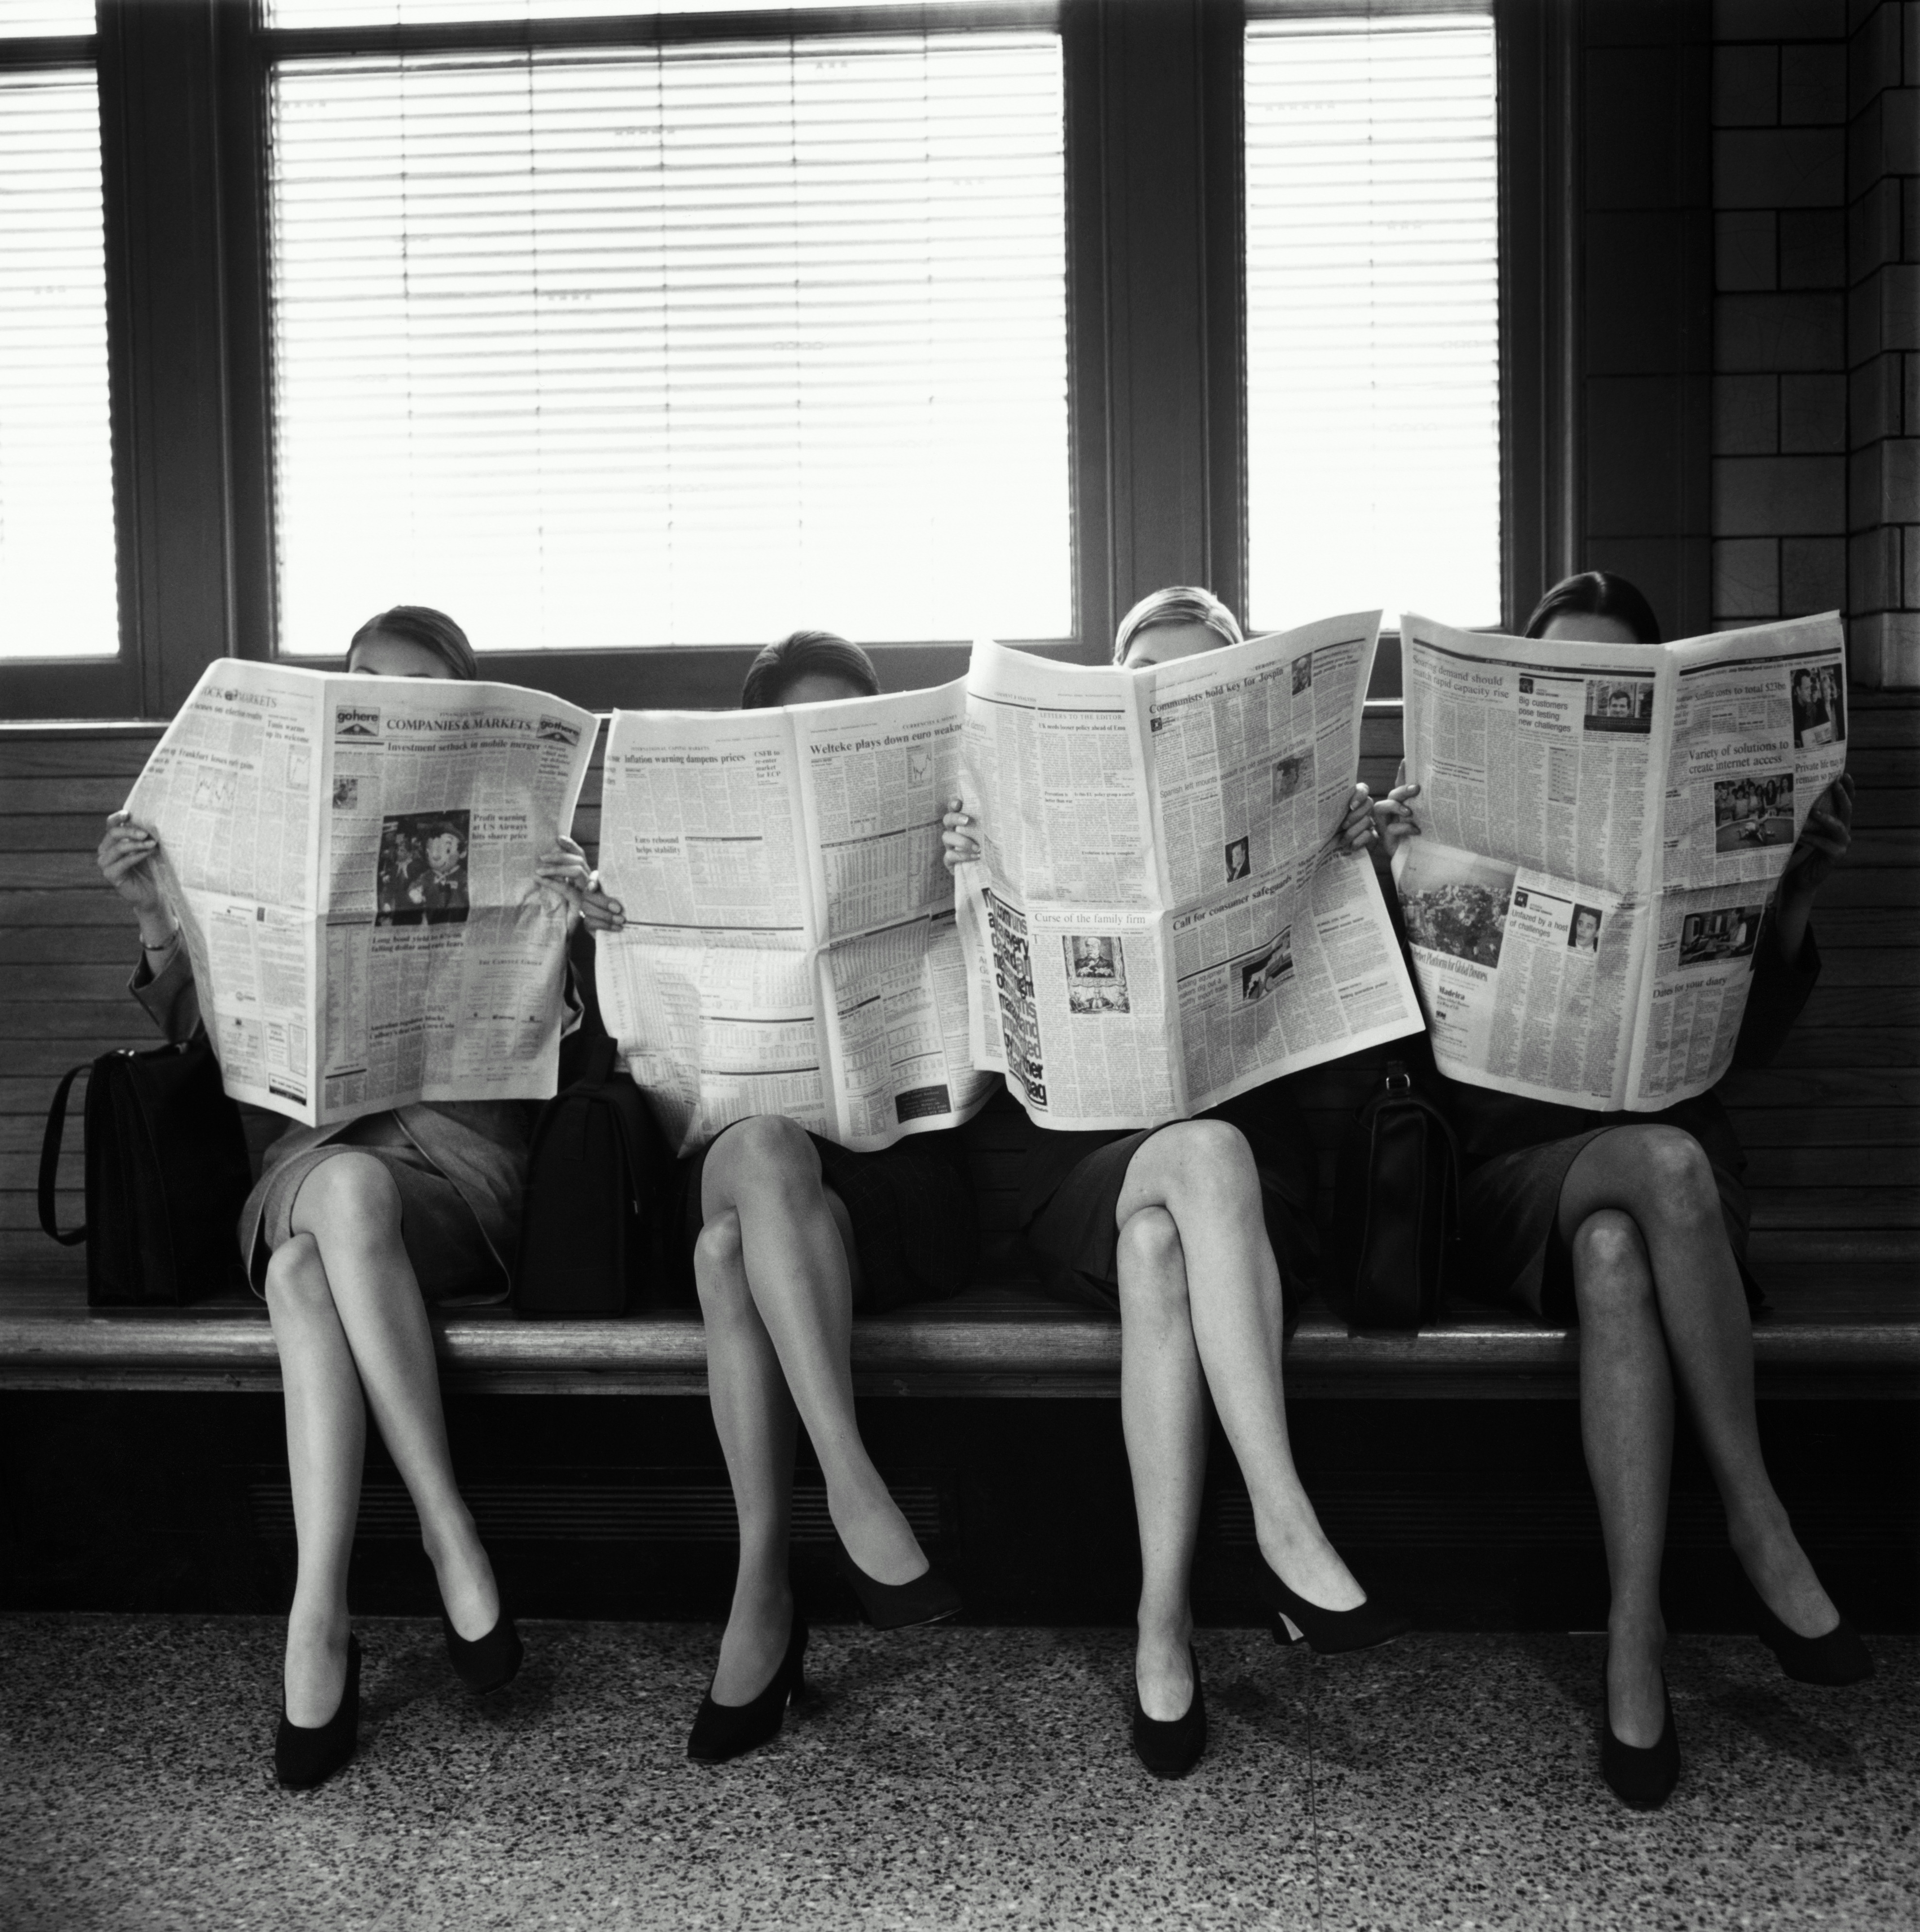 Four businesswomen sitting, reading newspapers, faces covered (B&W)